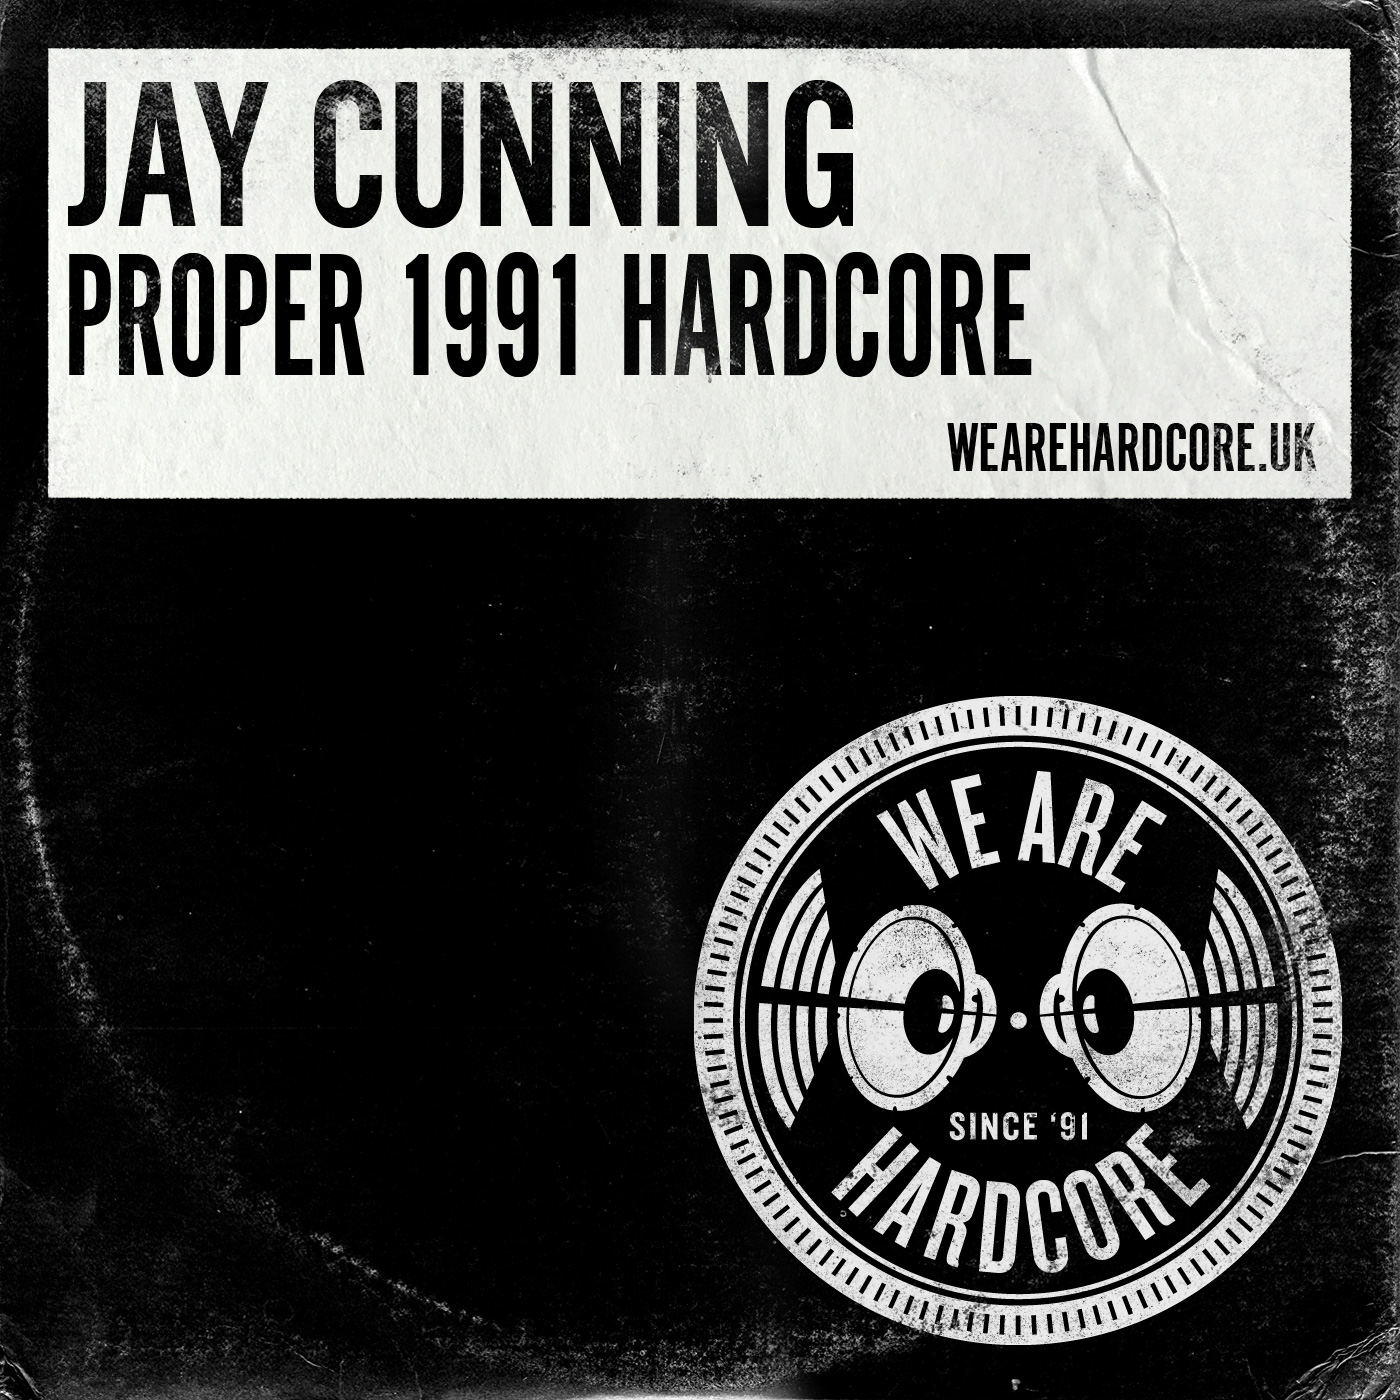 Proper 1991 Hardcore - Jay Cunning WE ARE HARDCORE